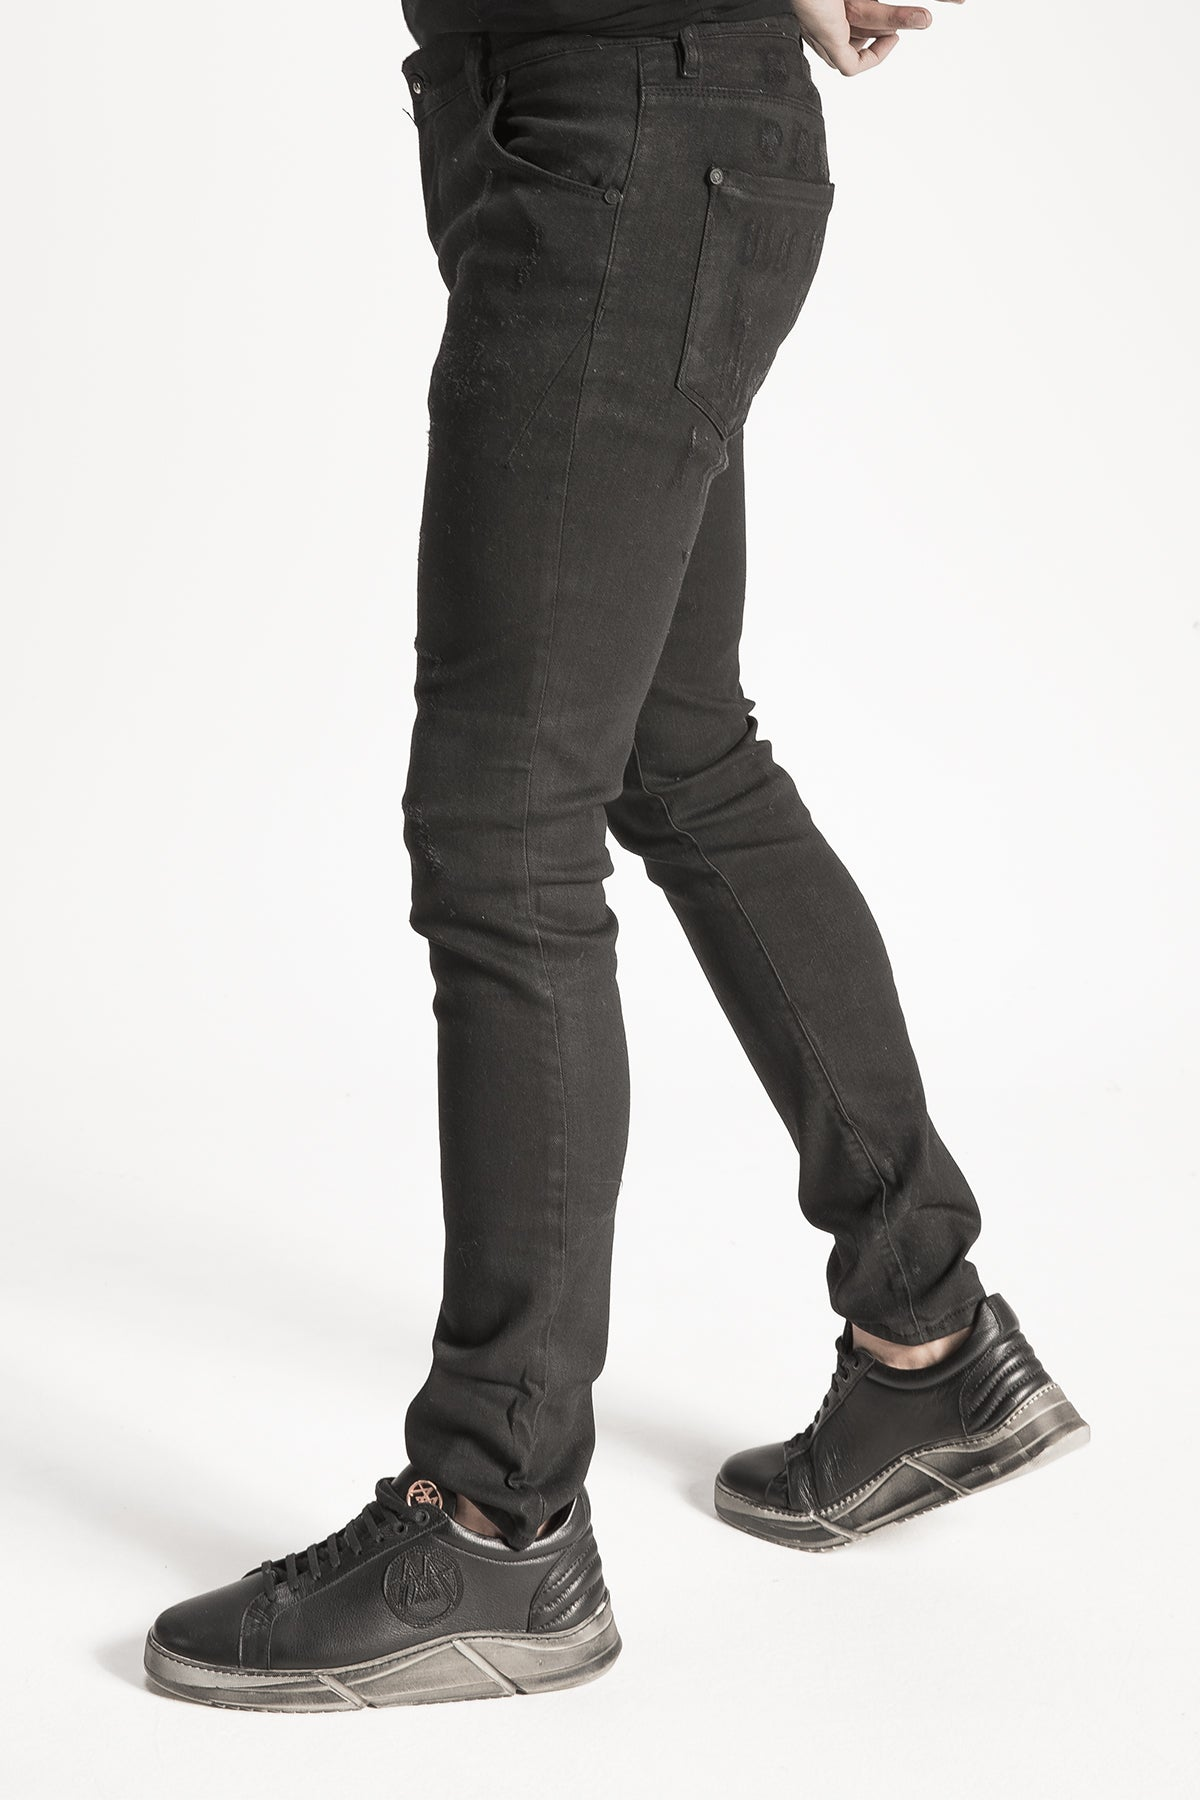 Black Worn Look Denim Pants